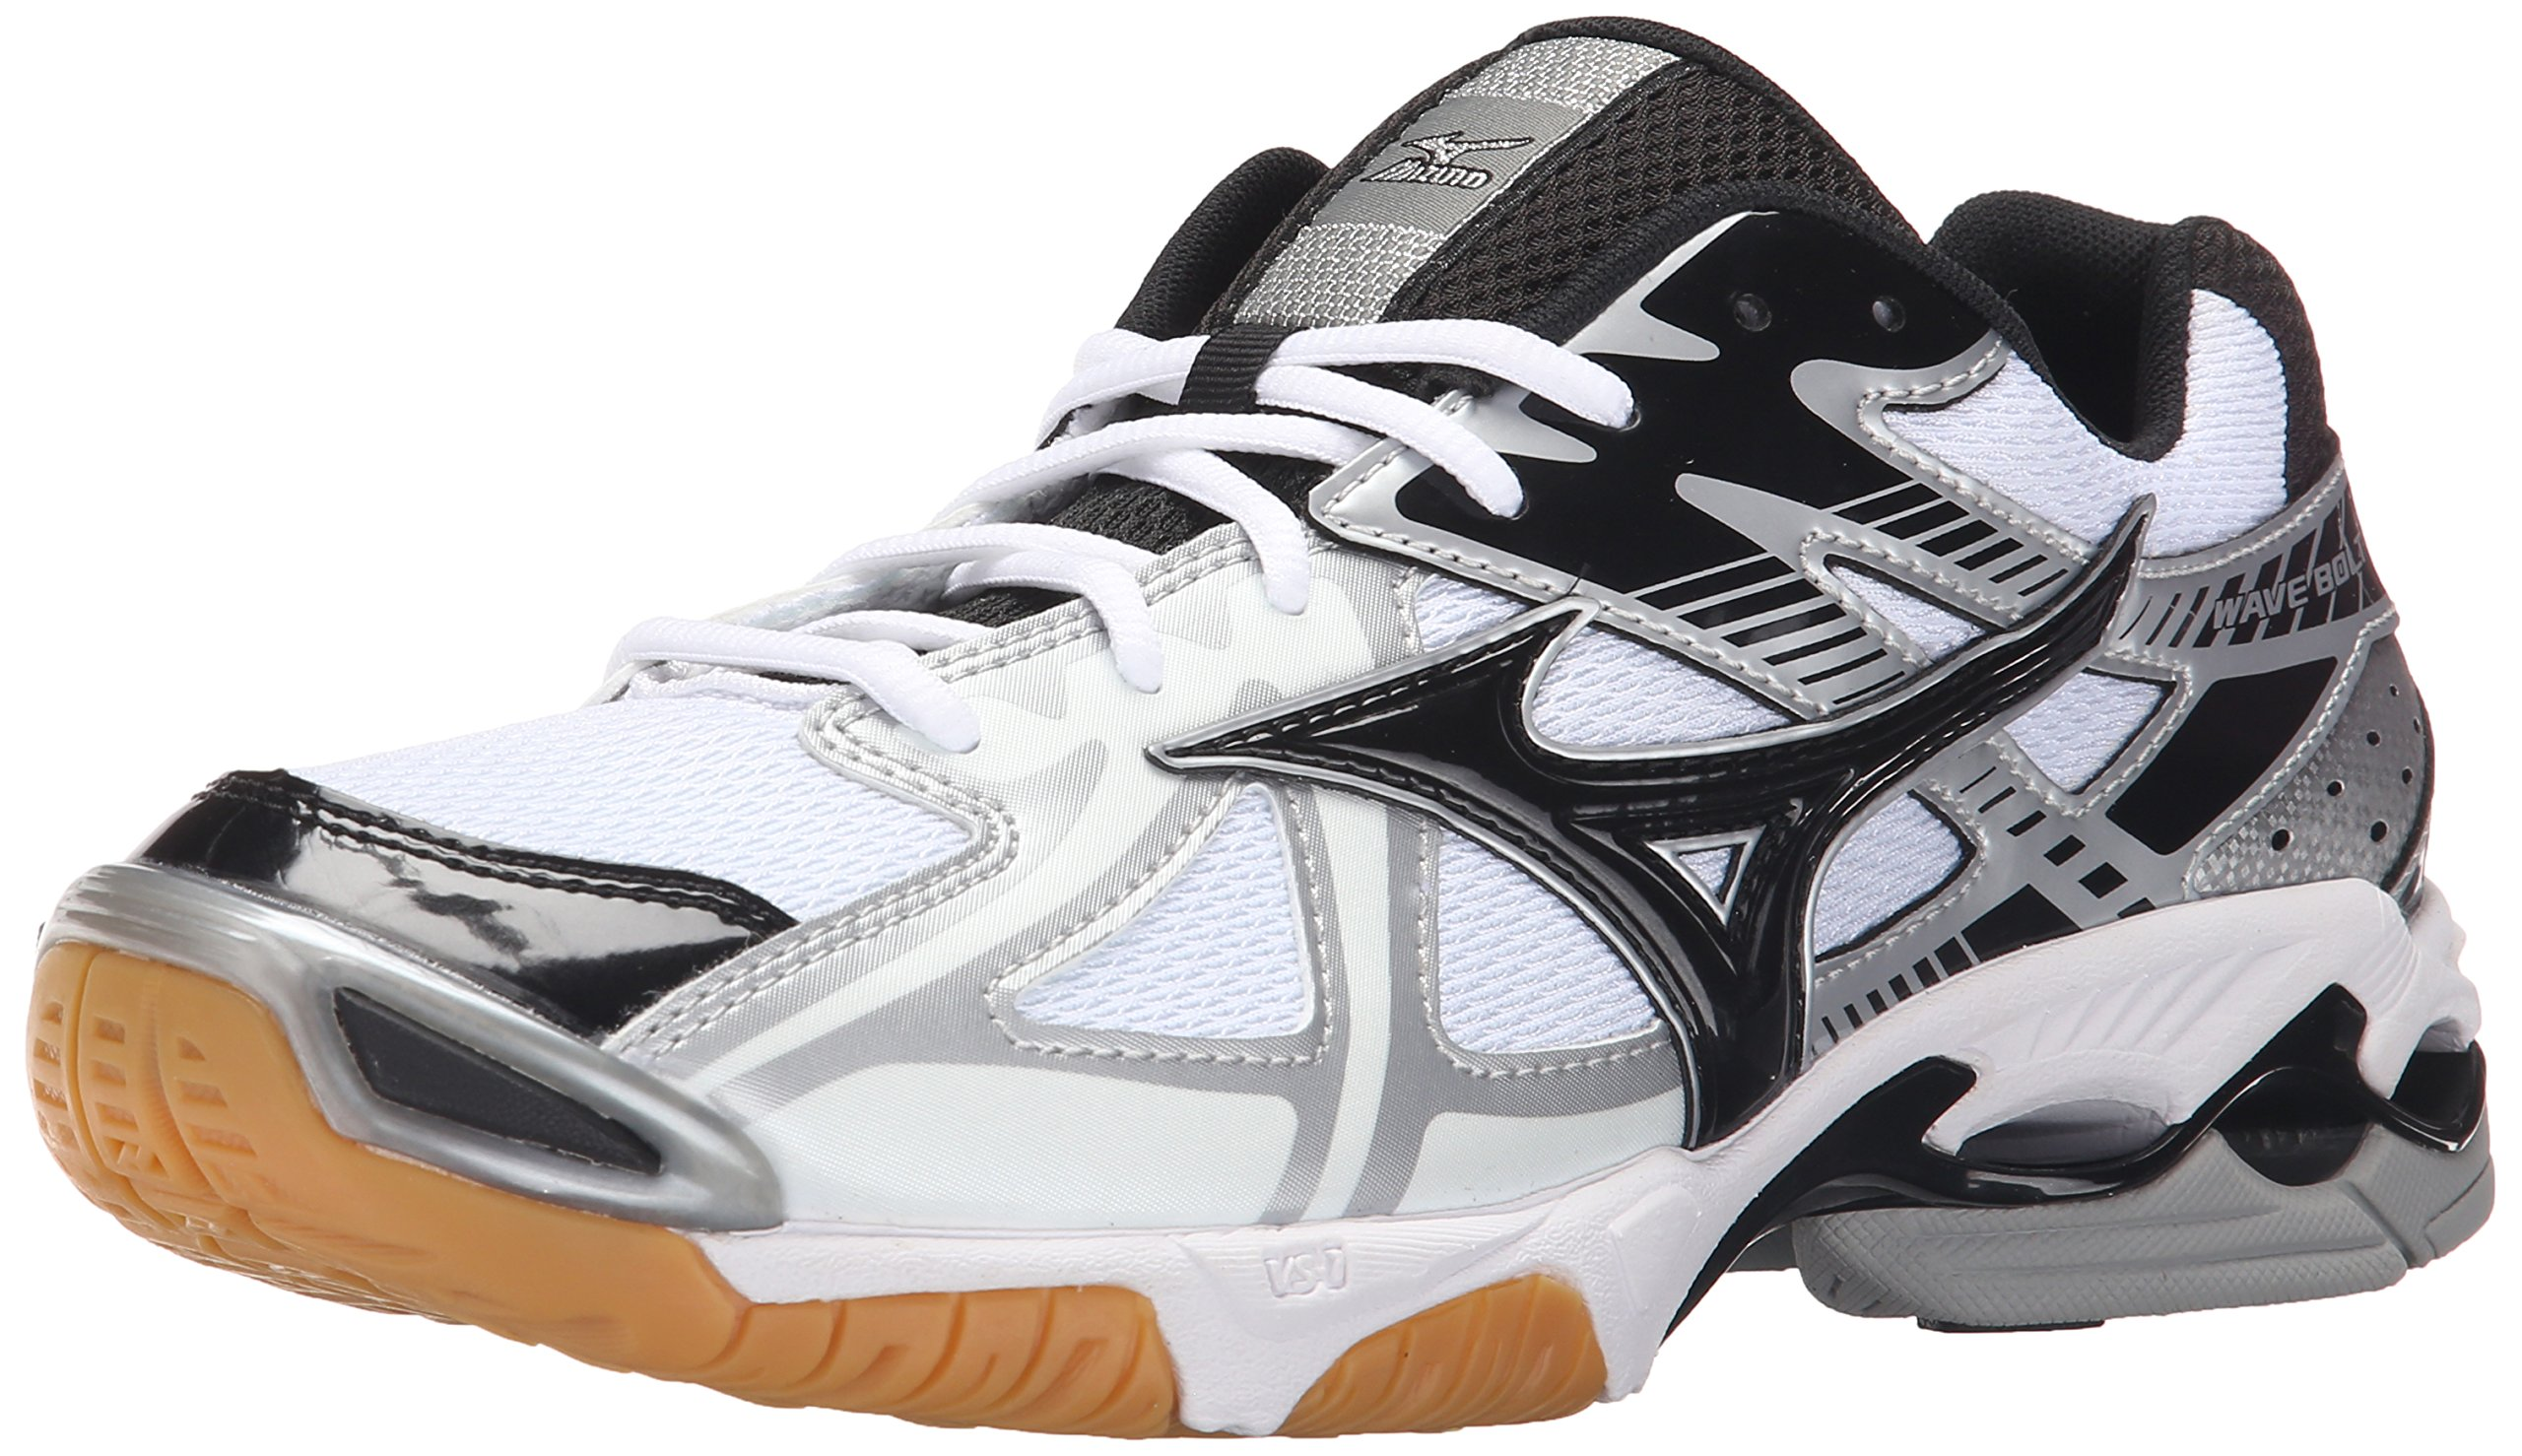 Mizuno Men's Wave Bolt 4 Wh-Bk Volleyball Shoes, White/Black, 15 D US by Mizuno